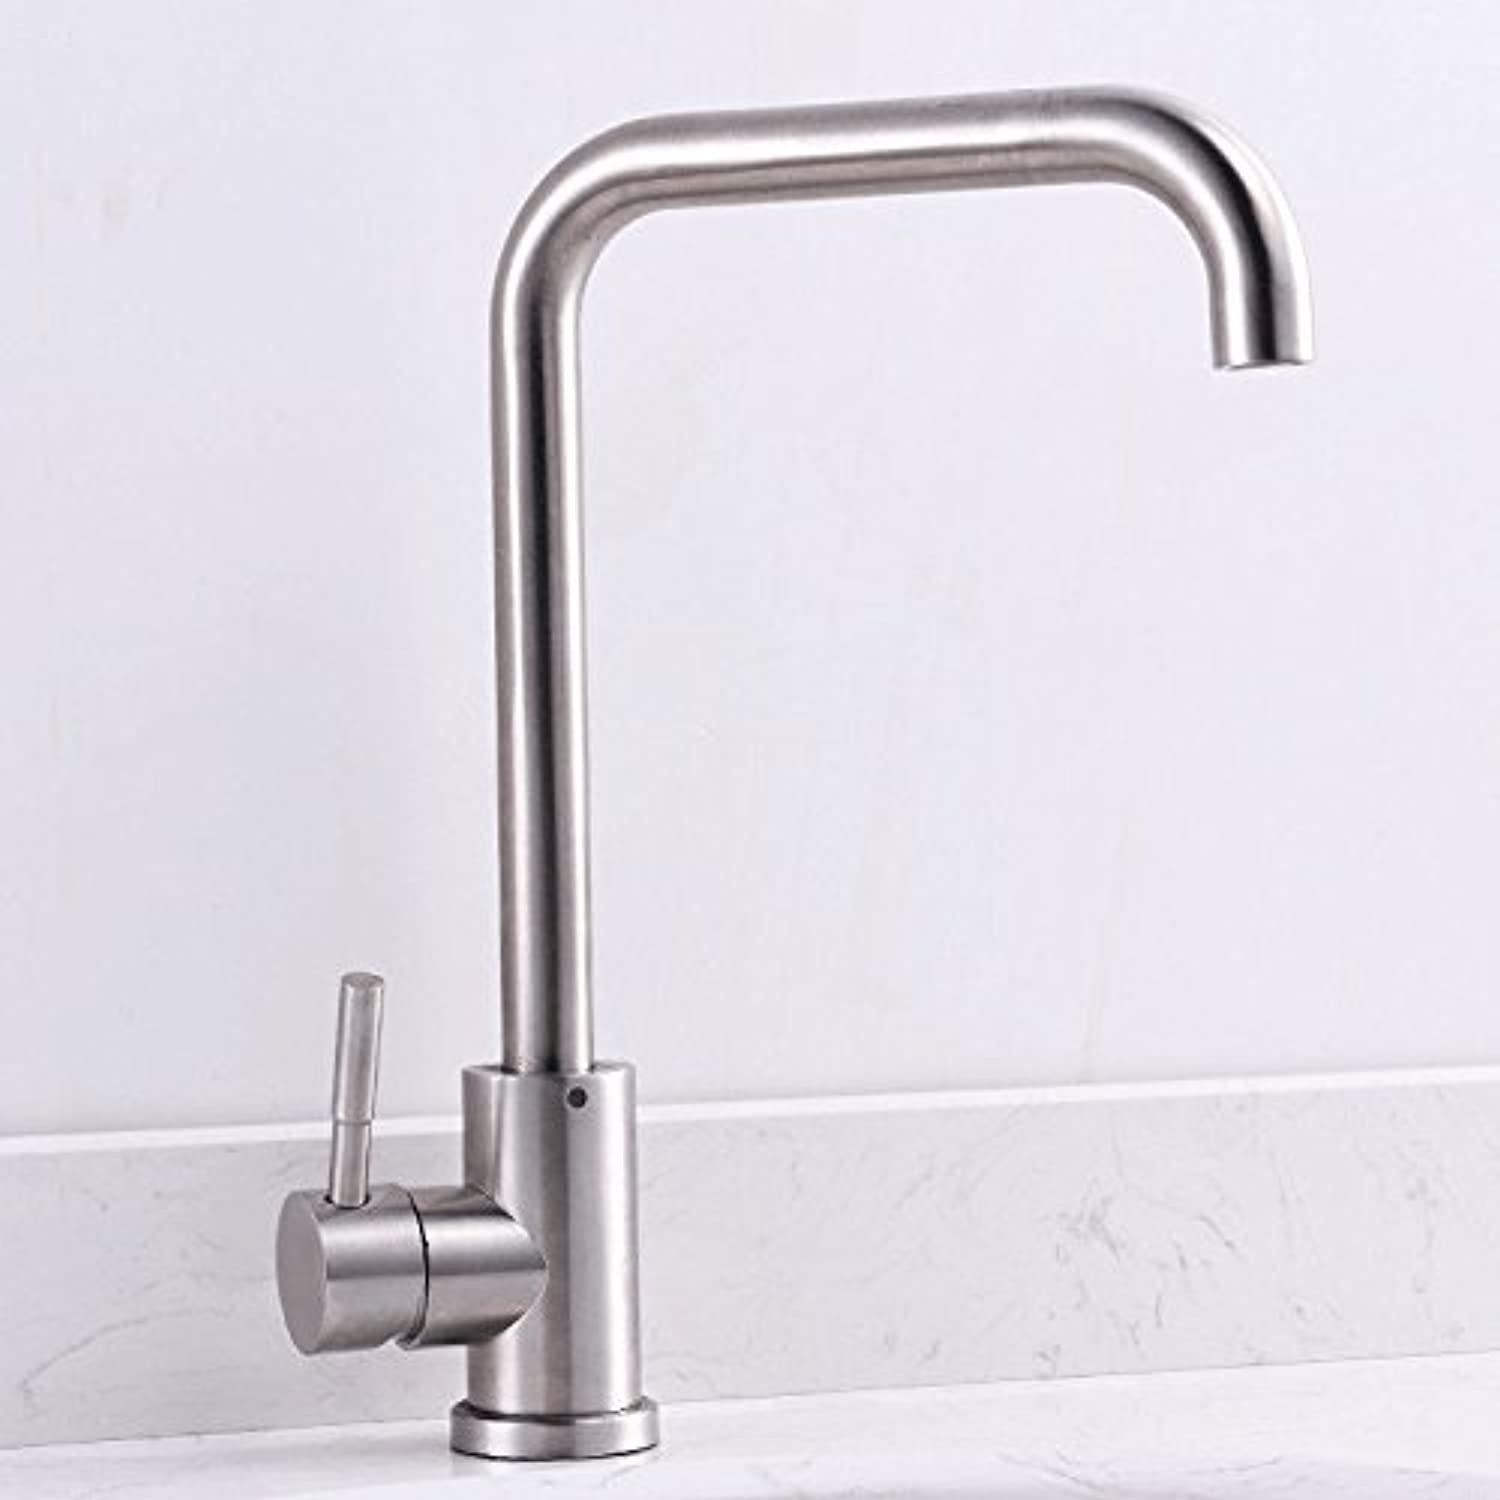 Commercial Single Lever Pull Down Kitchen Sink Faucet Brass Constructed Polished Lead-Free 304 Stainless Steel Kitchen Faucet 360 Degree redating Hot and Cold Basin Faucet